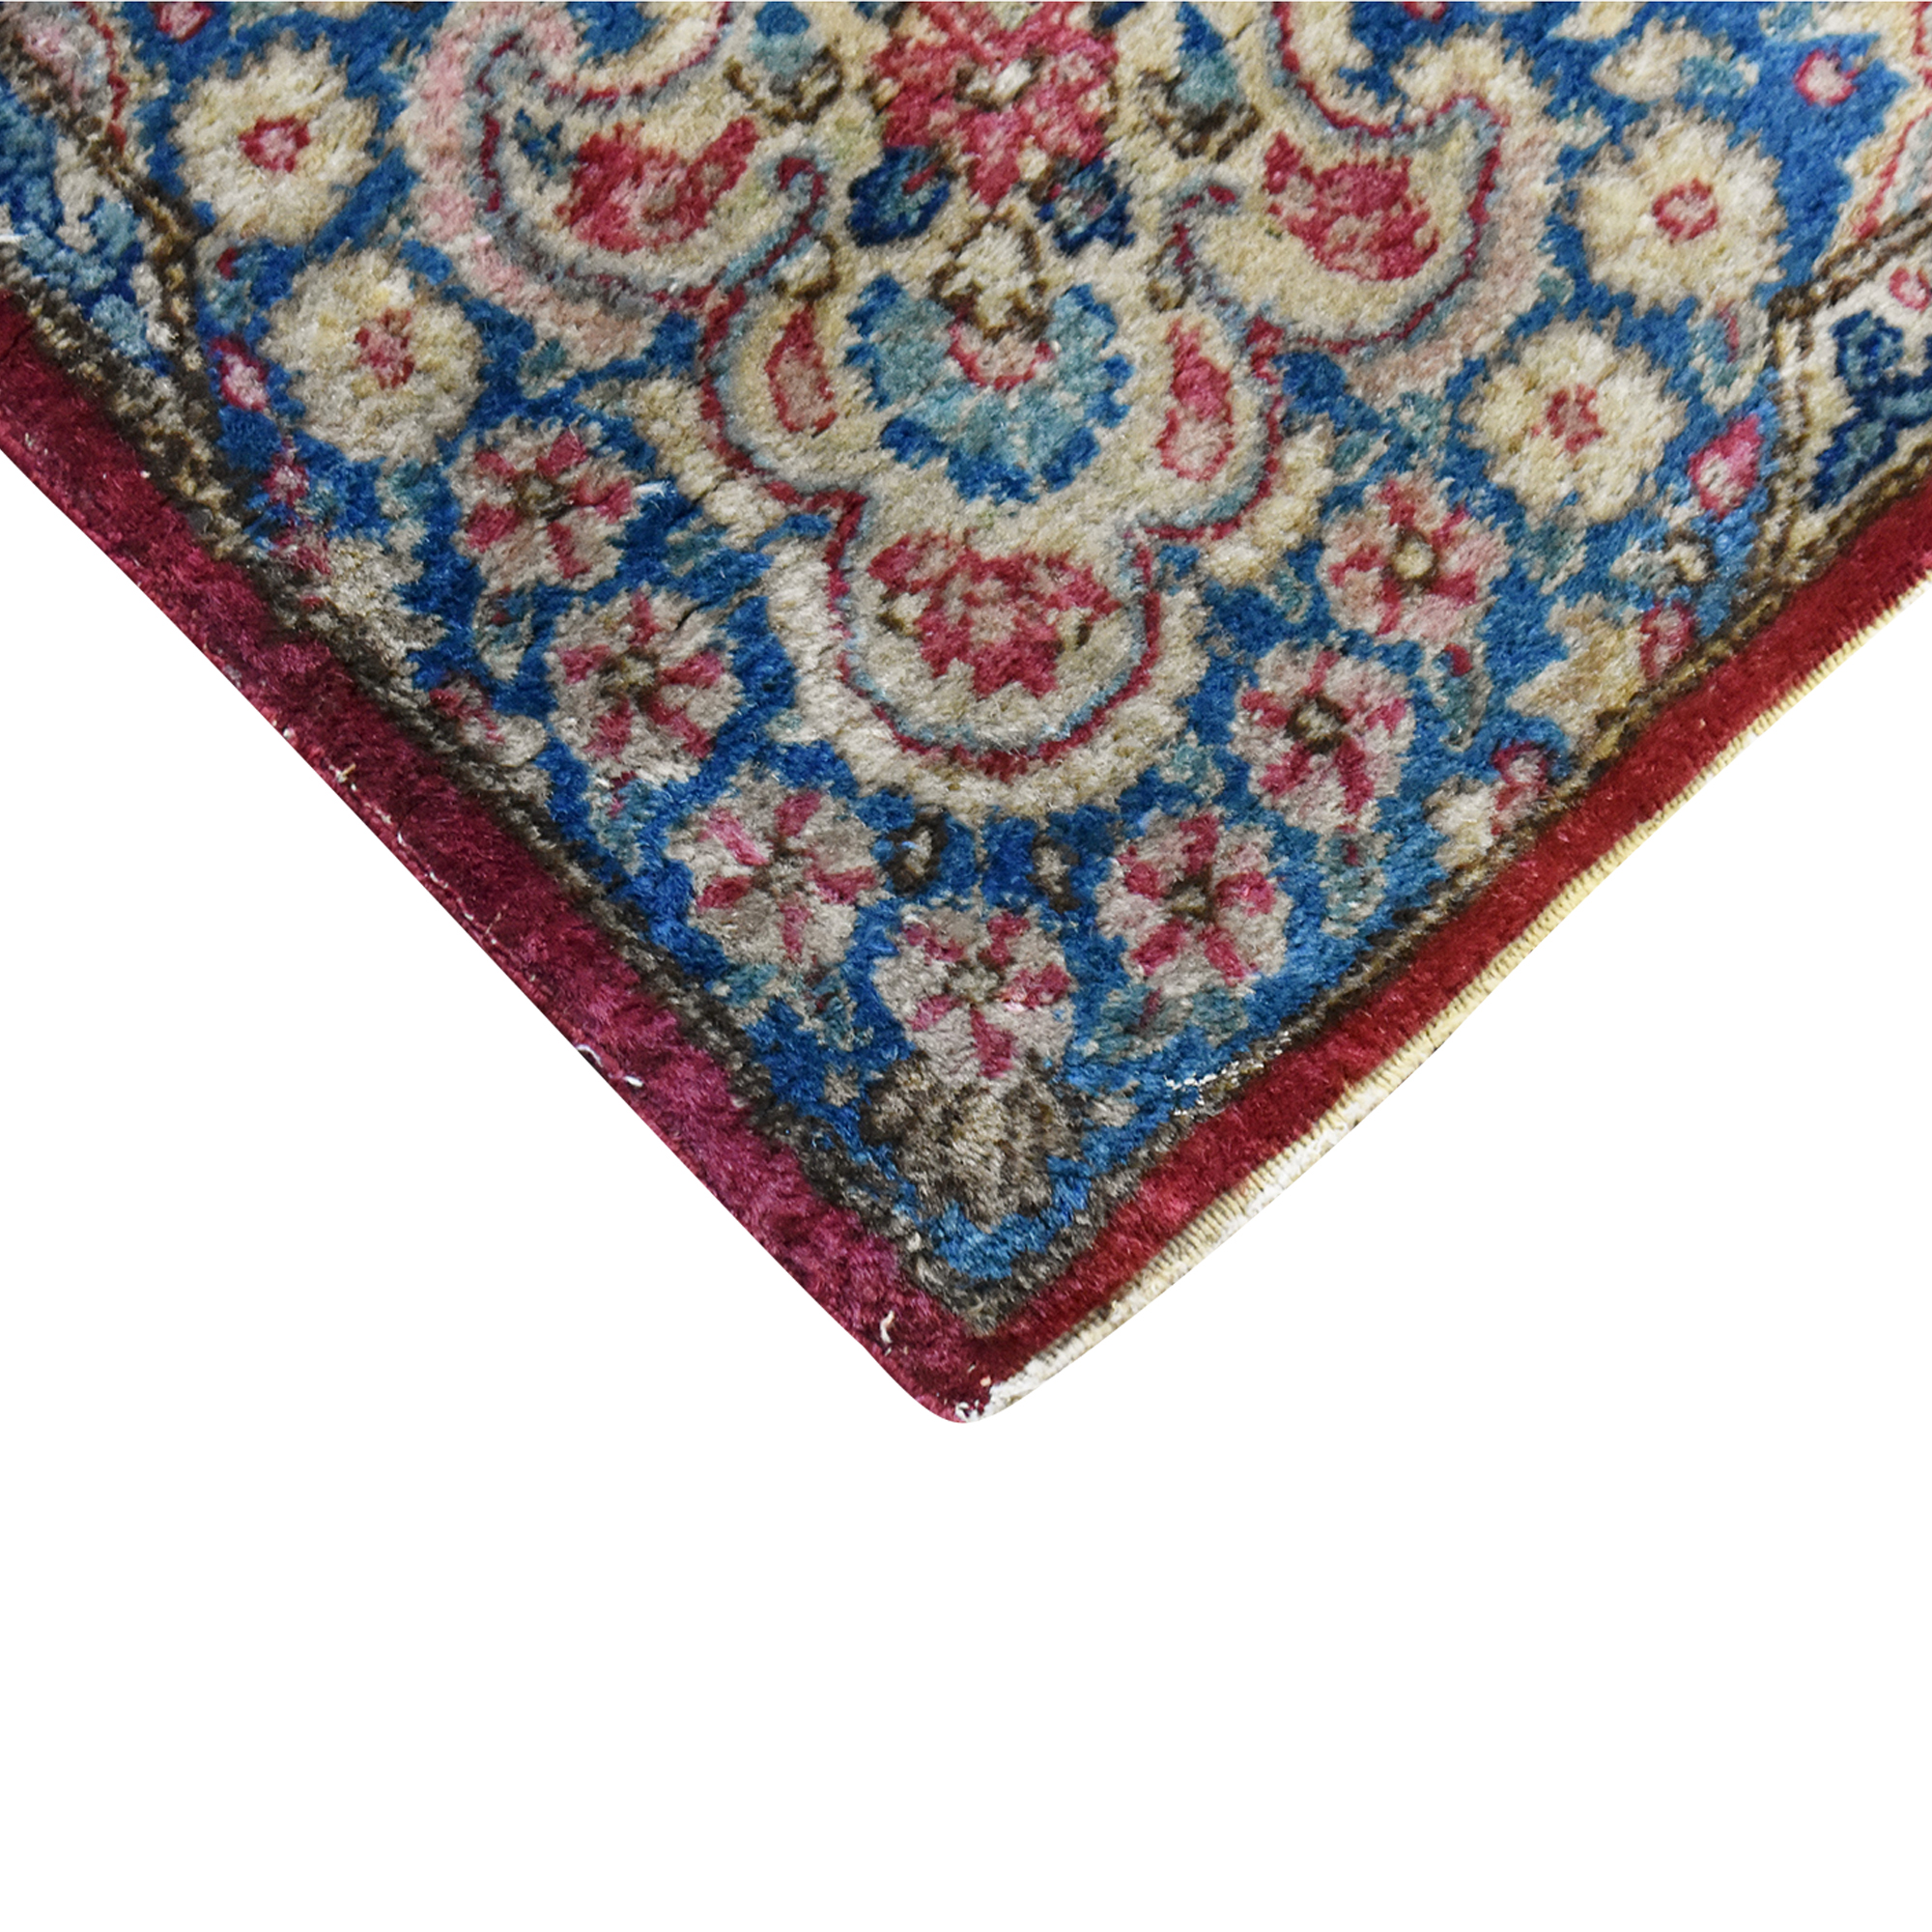 buy Patterned Persian-Style Area Rug  Decor